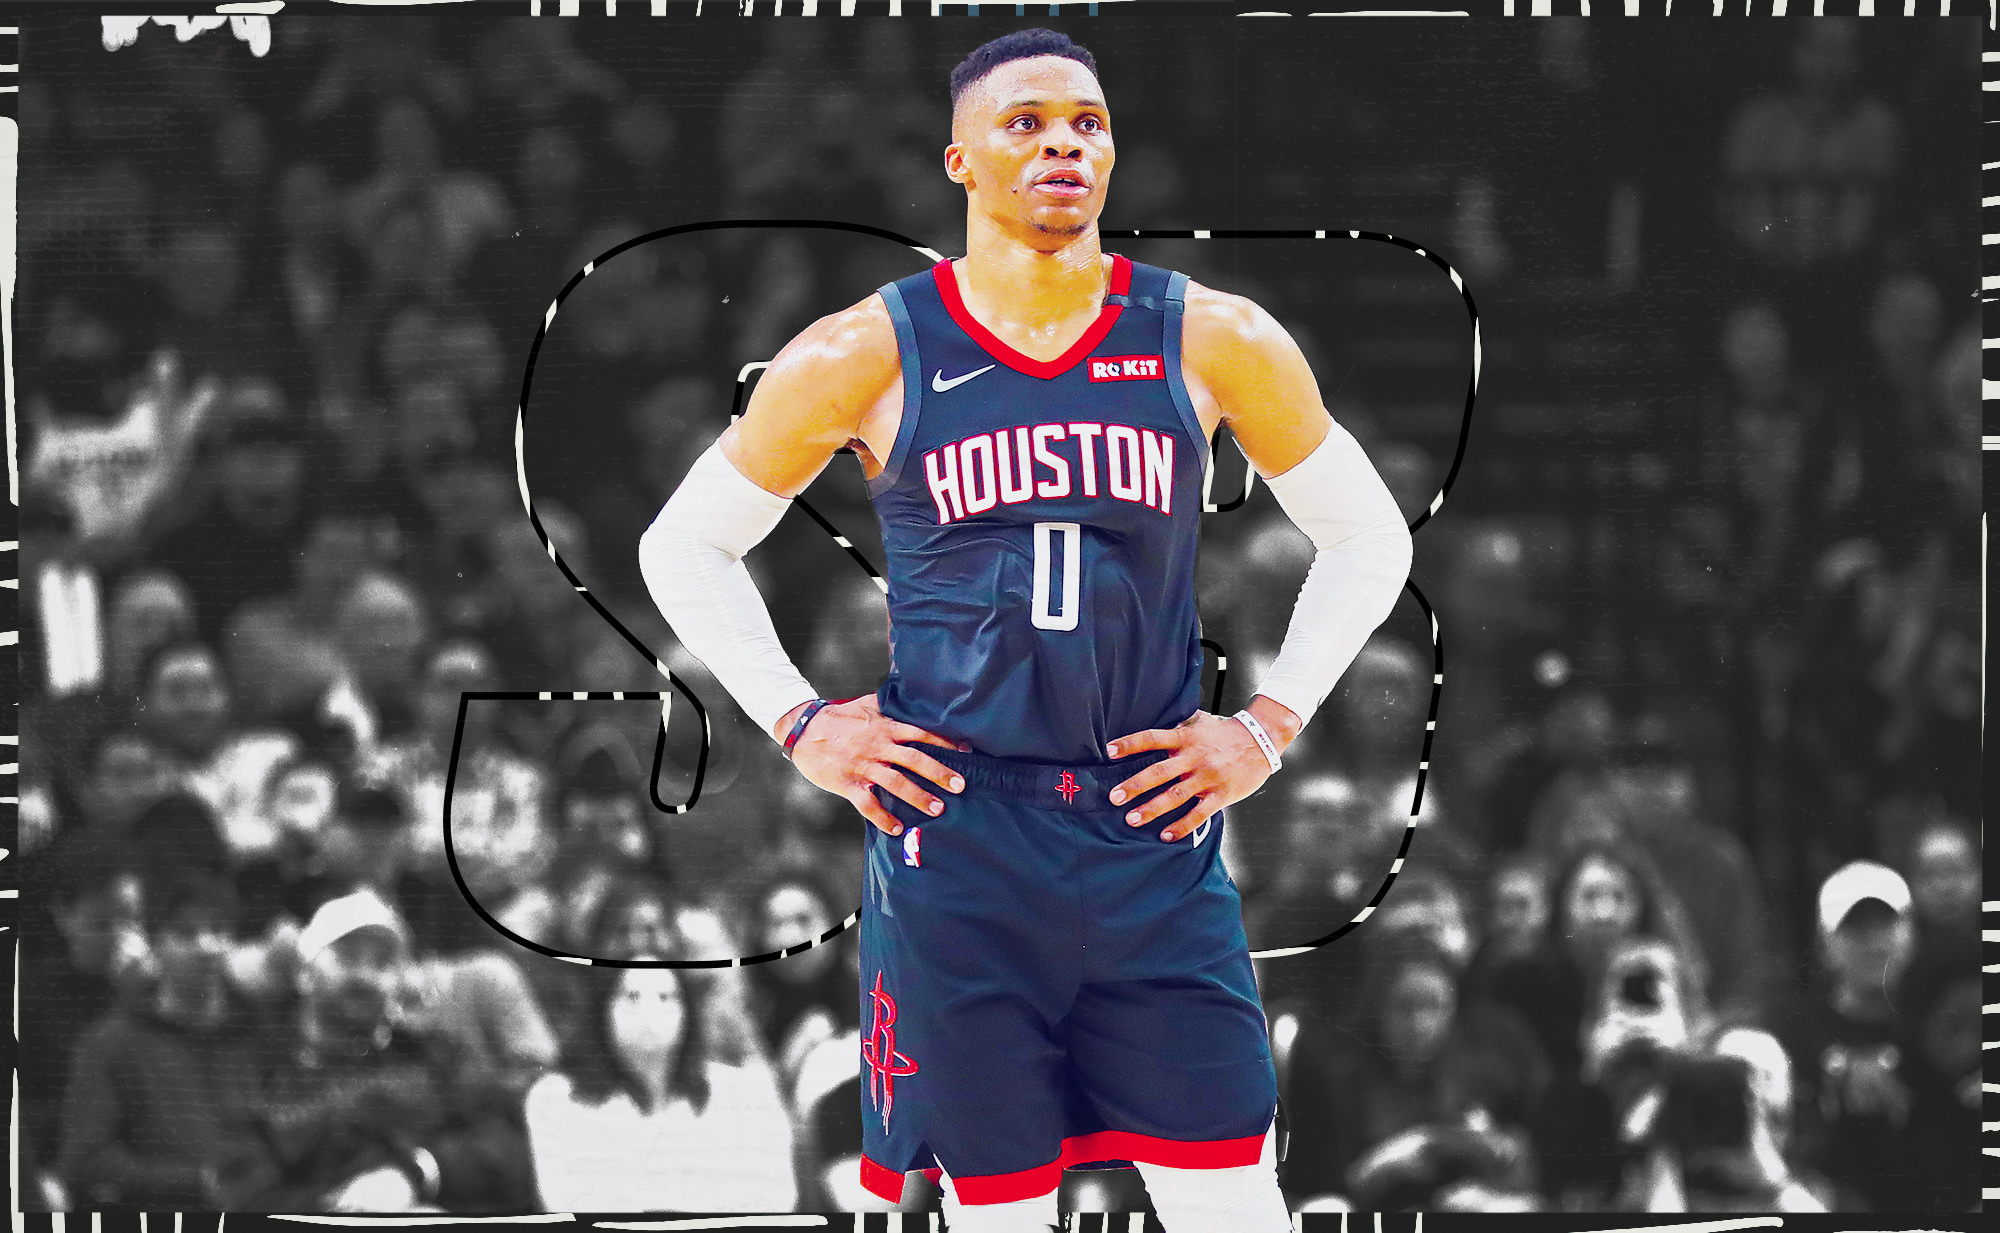 Russell Westbrook stands on the court for the Rockets.